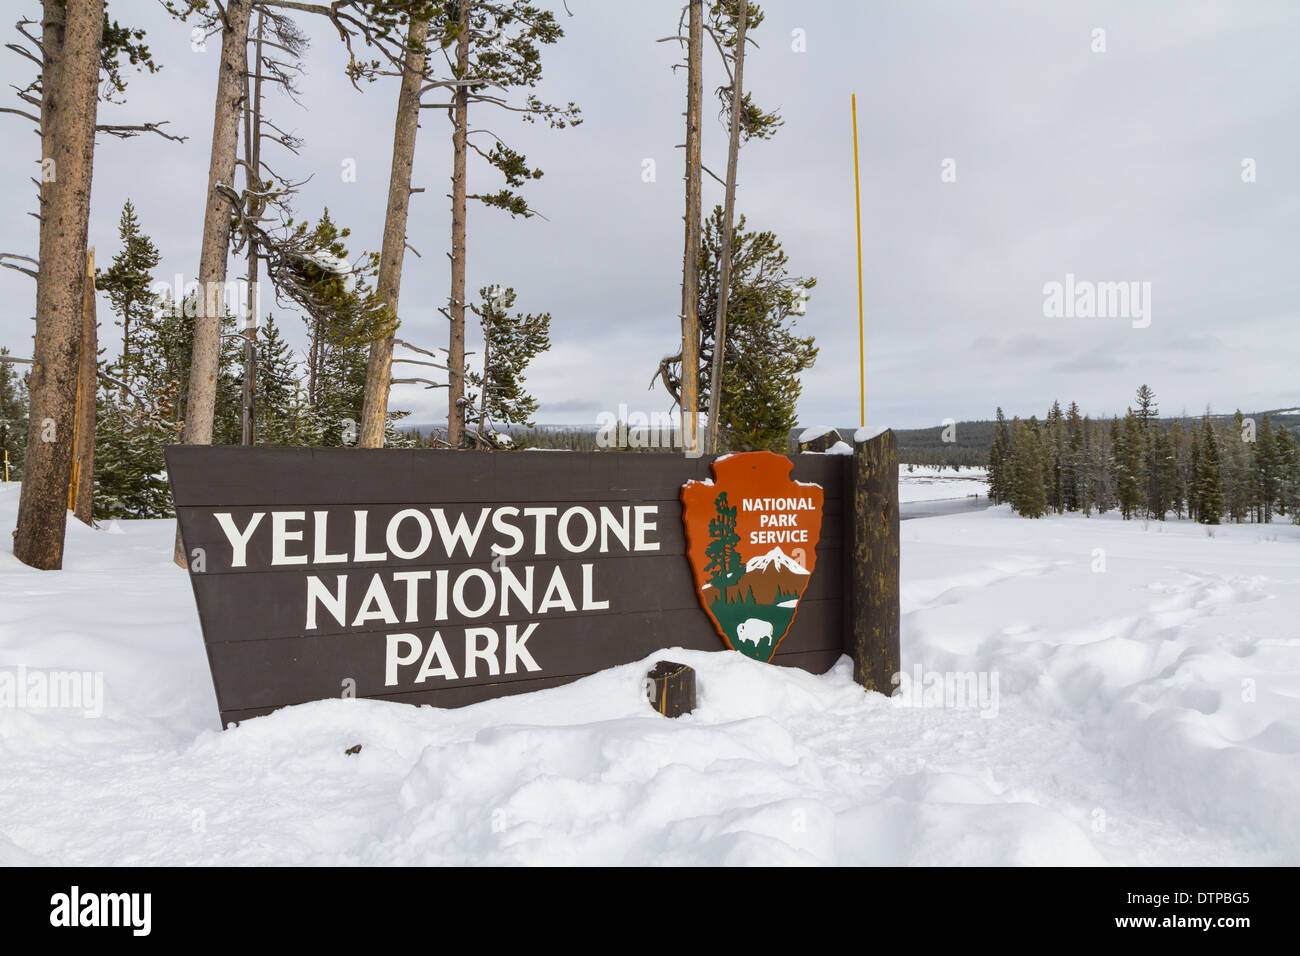 Yellowstone national park entrance sign in winter - Stock Image